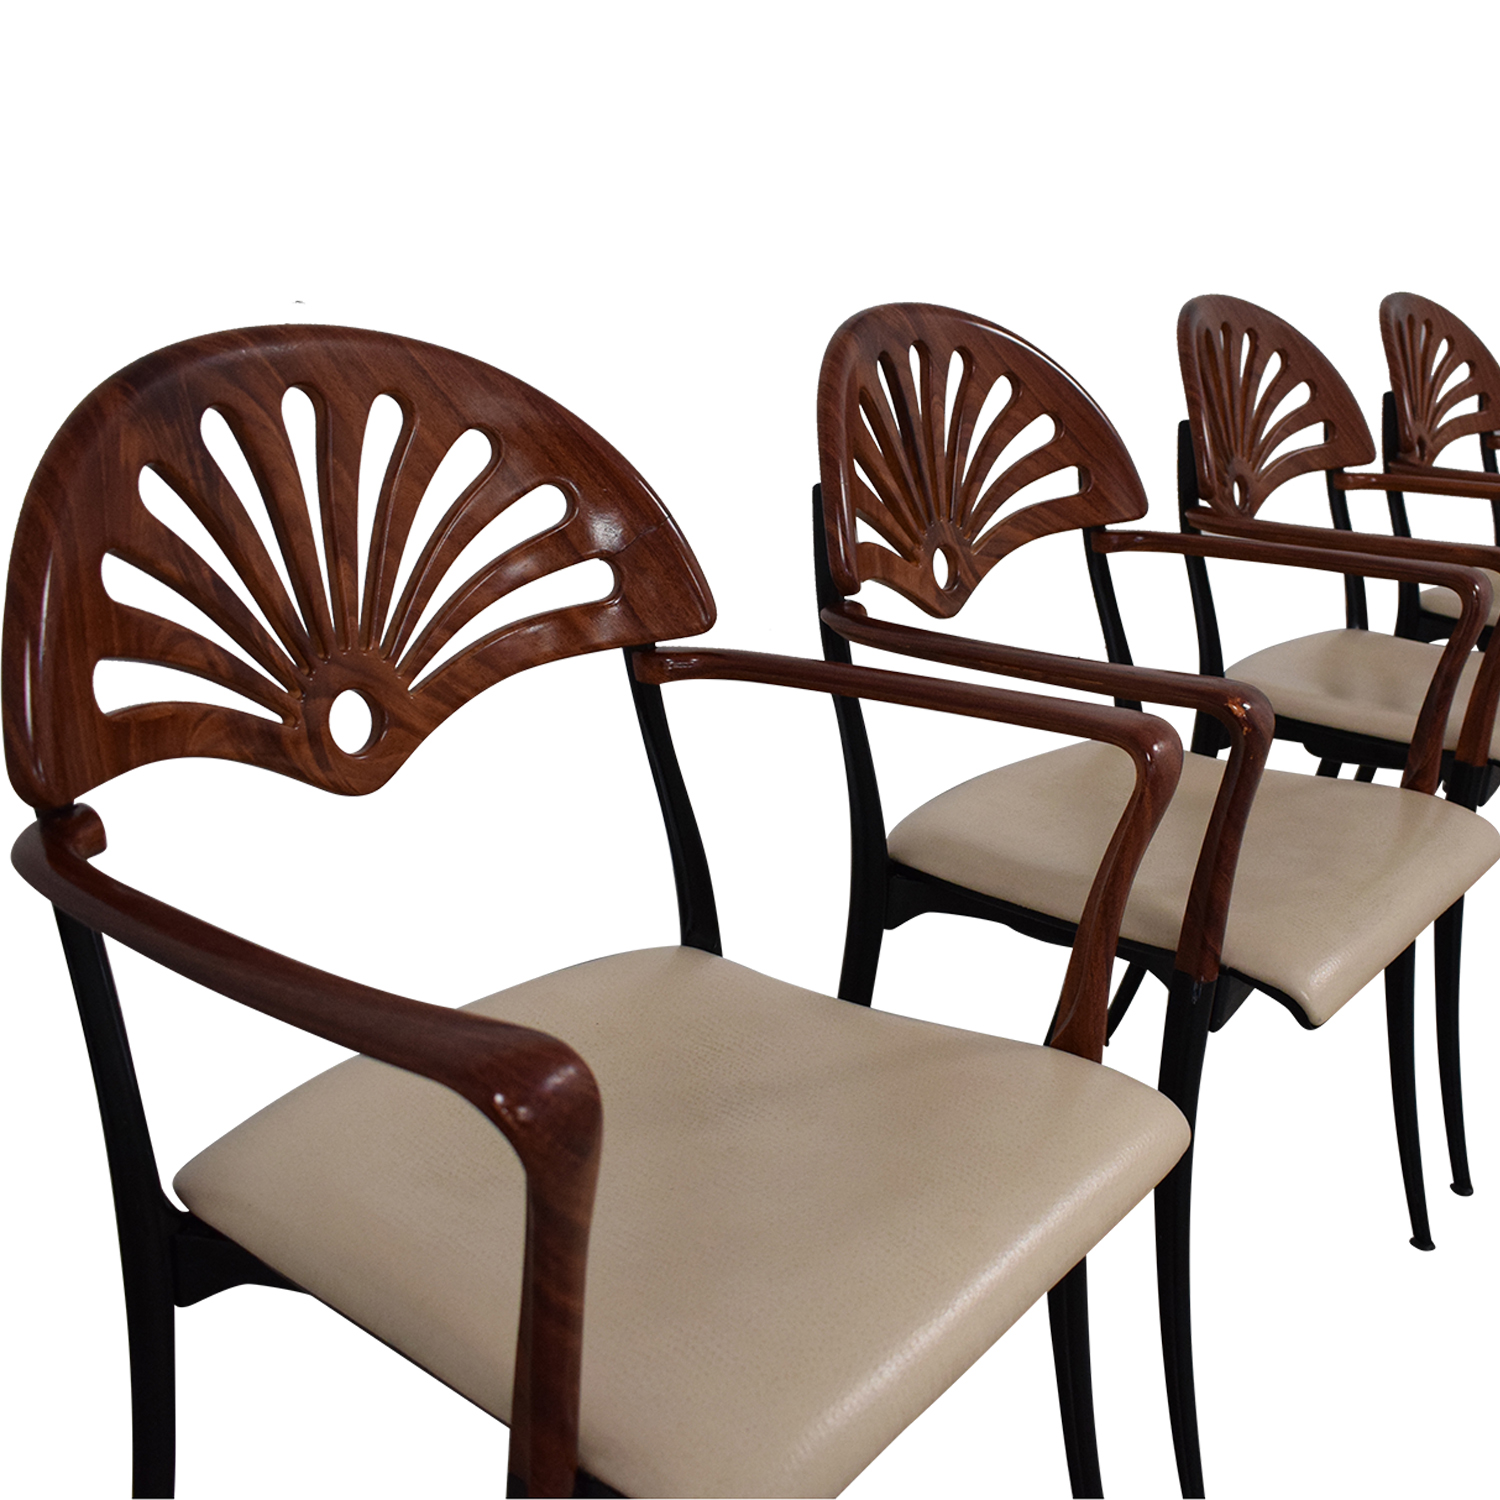 Pleasing 80 Off Italian Dining Chairs Chairs Dailytribune Chair Design For Home Dailytribuneorg